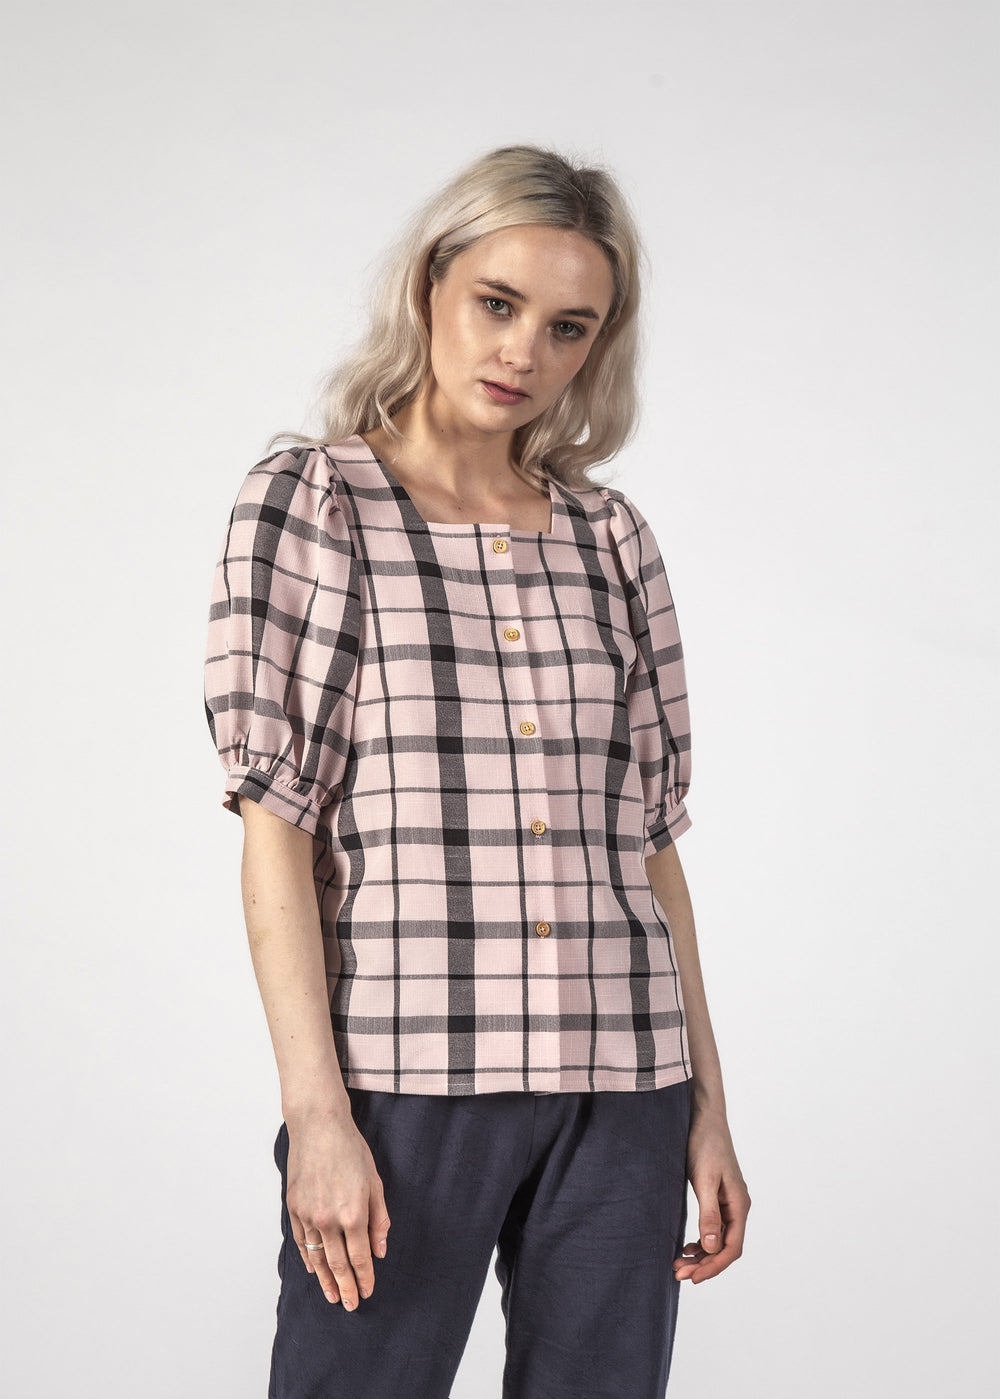 SMALL TALK TOP - PASTEL CHECK